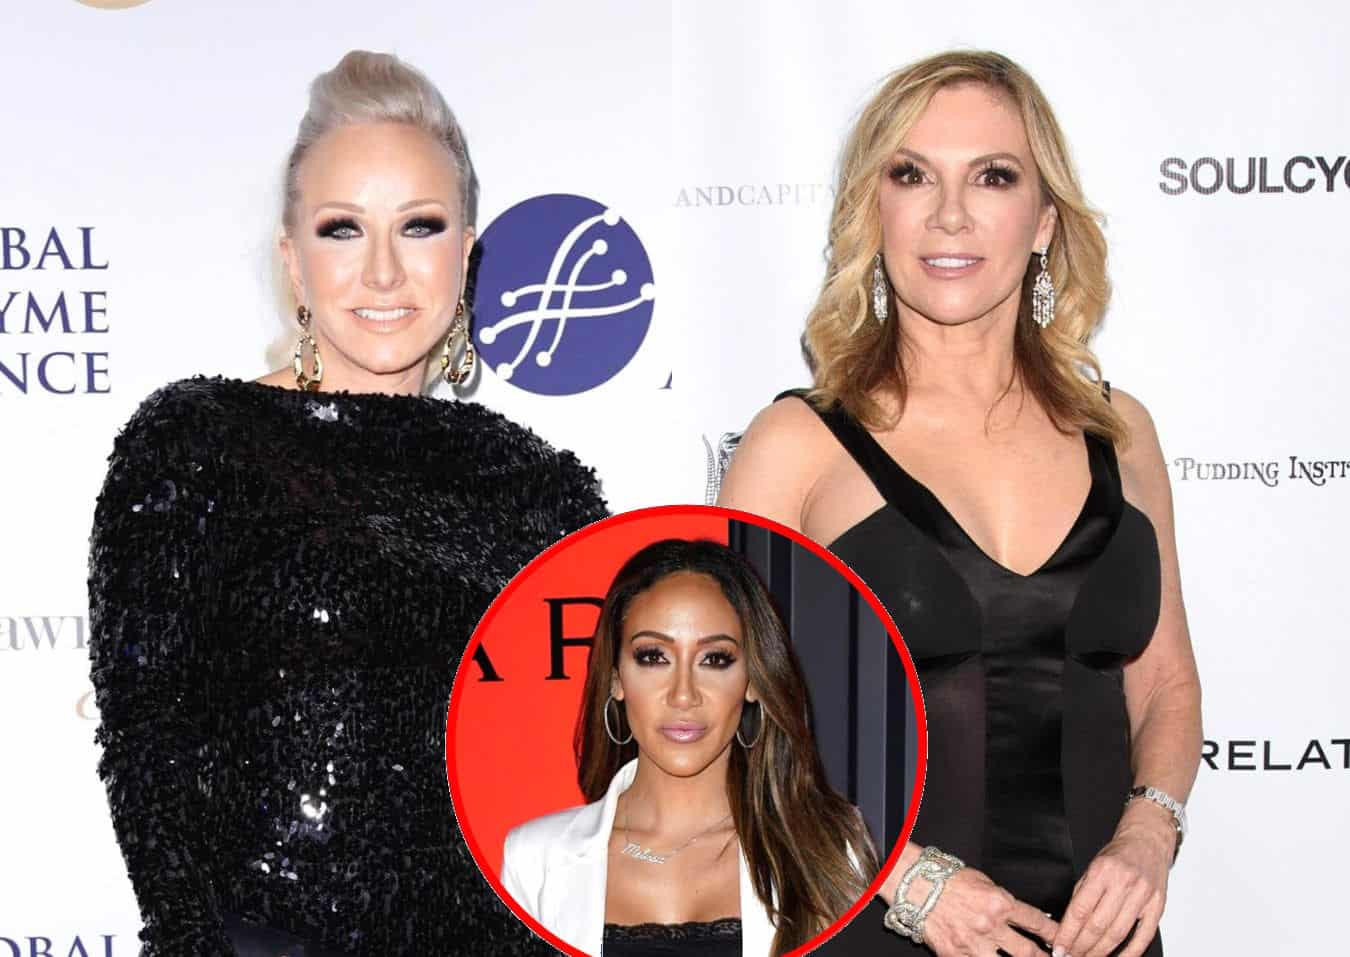 RHONJ Star Margaret Josephs SlamsRamona Singer for Being Mean to Fans, Implies Ramona's Friendship With Melissa Gorga Might Be a Bit One-Sided